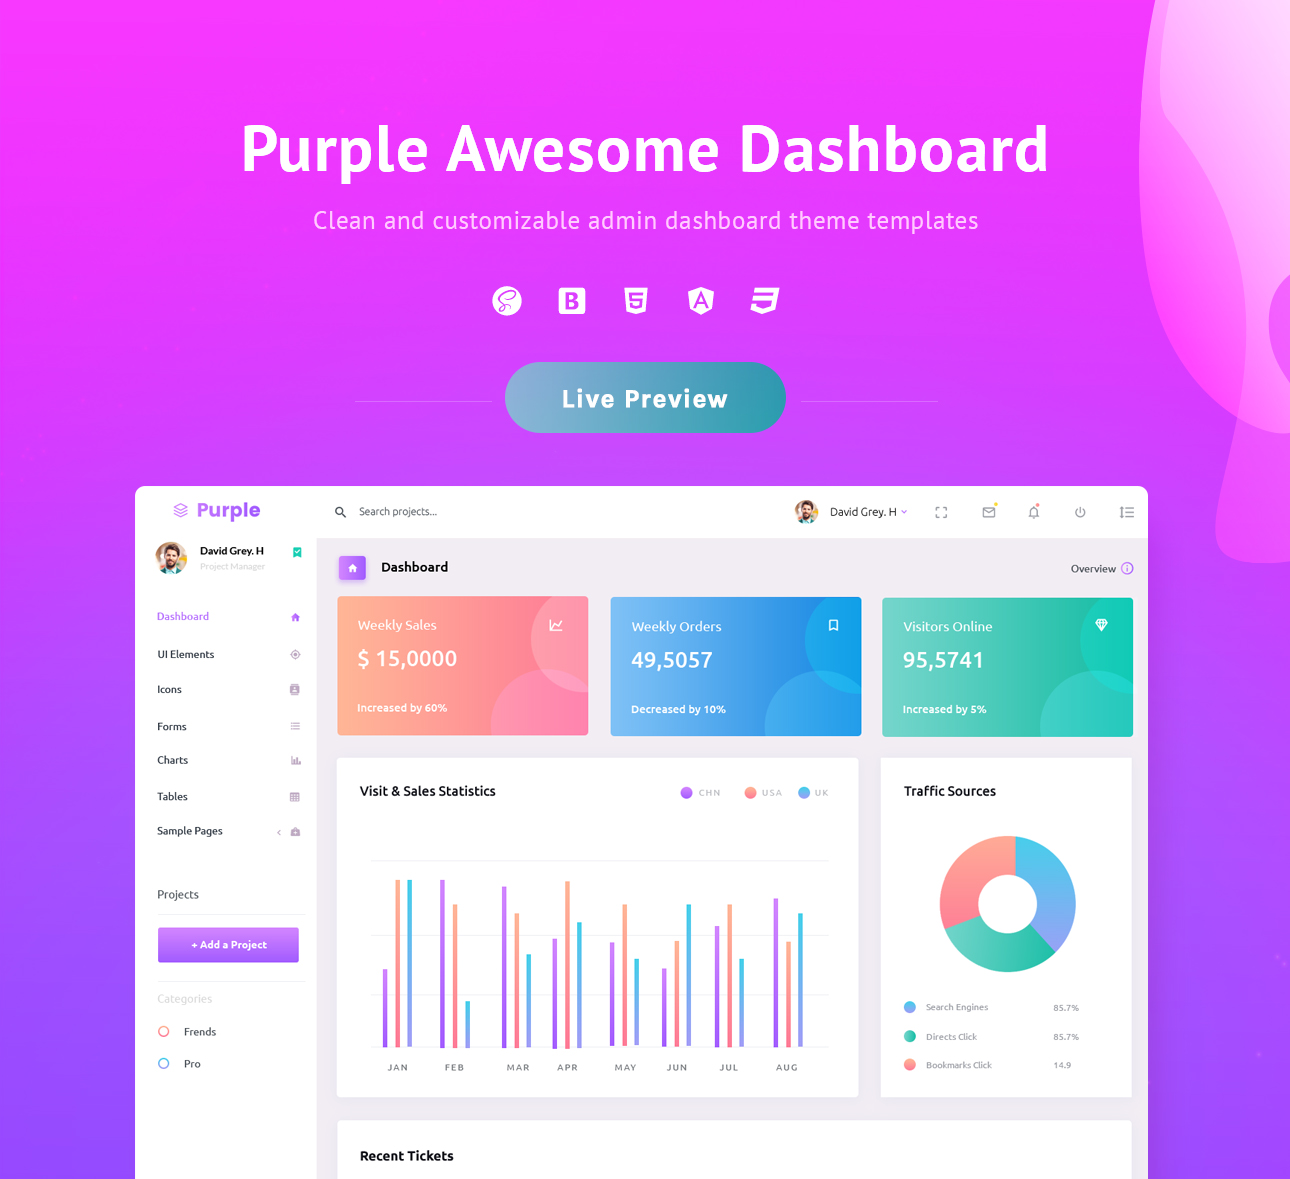 Purple Free - The source code published on Github.